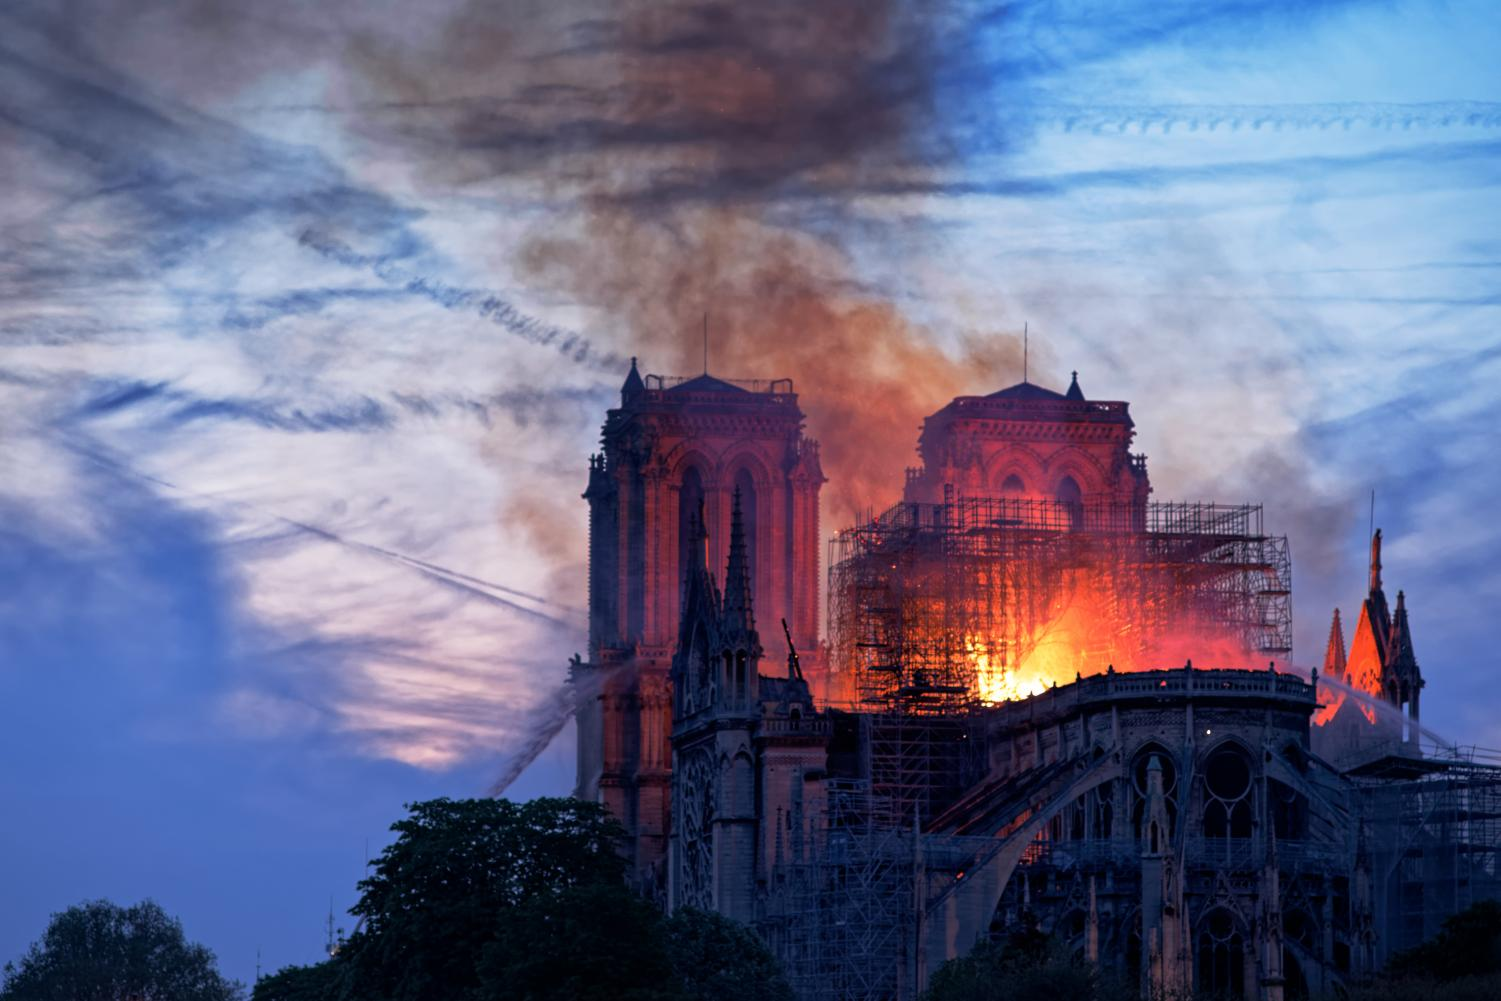 While the Notre Dame Cathedral is a vital part of history, wealthy people should reconsider what pushes them to charity. (Courtesy of Flickr)